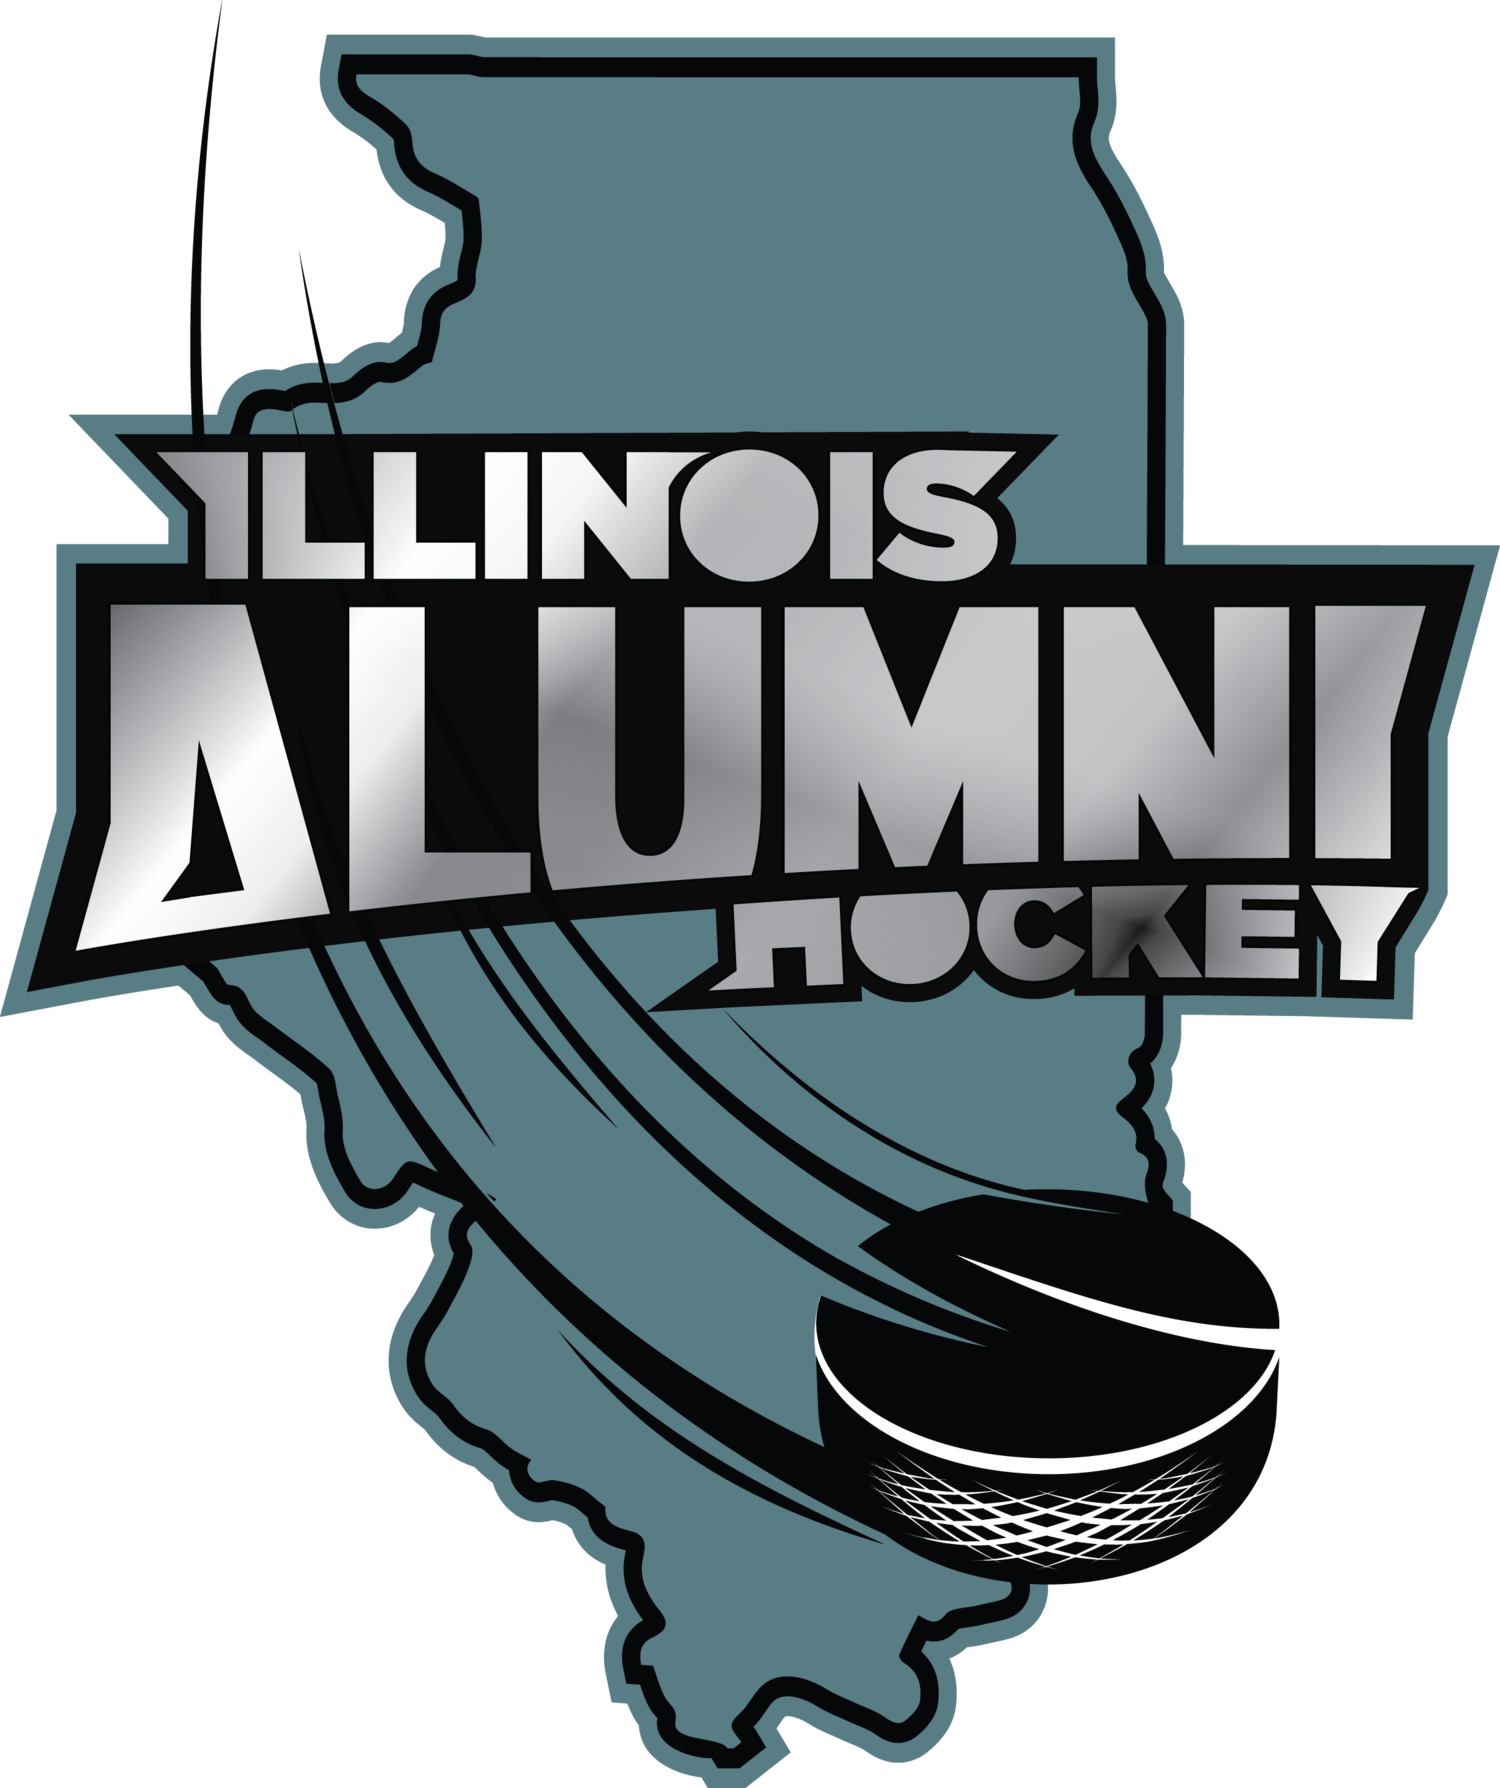 Illinois Alumni Hockey